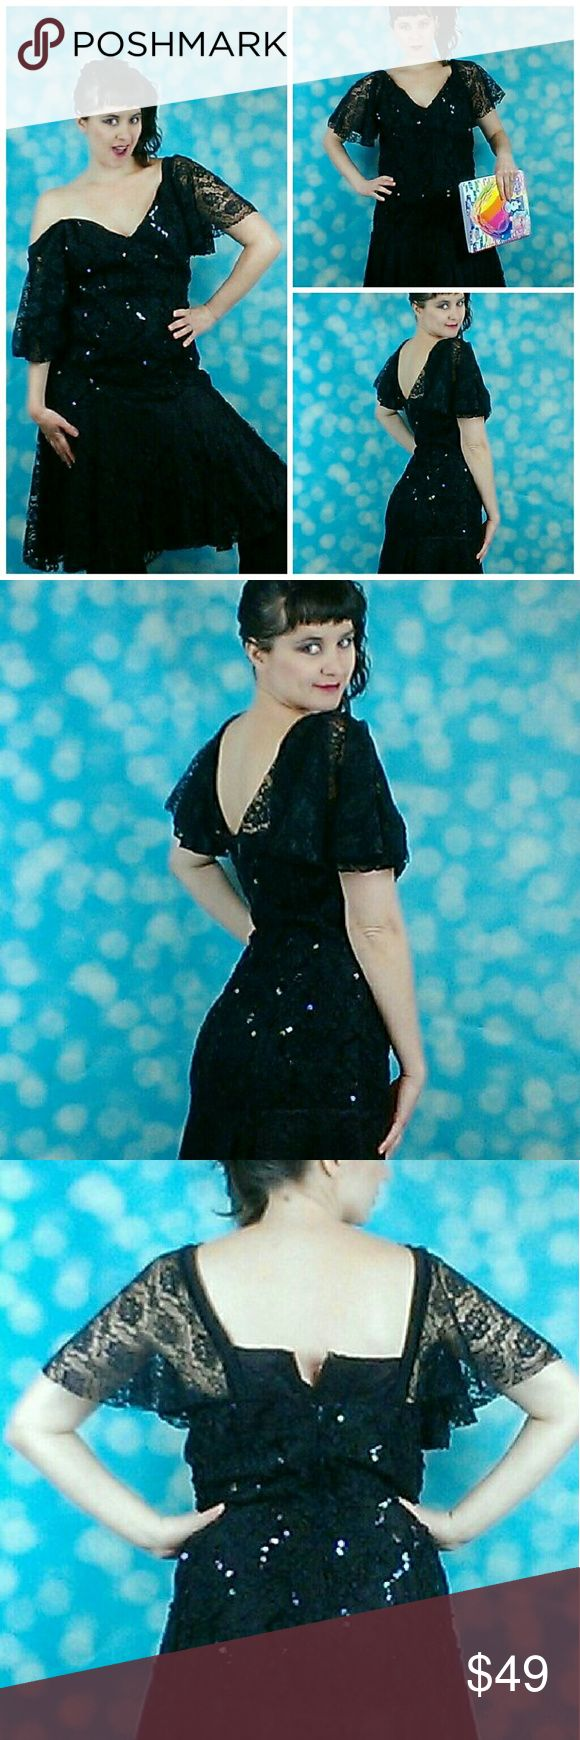 Vintage 80s black lace sequins prom party dress True vintage dress runs very small. Says it's a size 16 but might fit up to a size 10. Model is a size 4.  Gently pre-owned with no flaws. Someone wrote Eliza on one of the tags.  38 inches long. 32 inches at the waist. 34 inch bust. HW Collections Dresses Midi